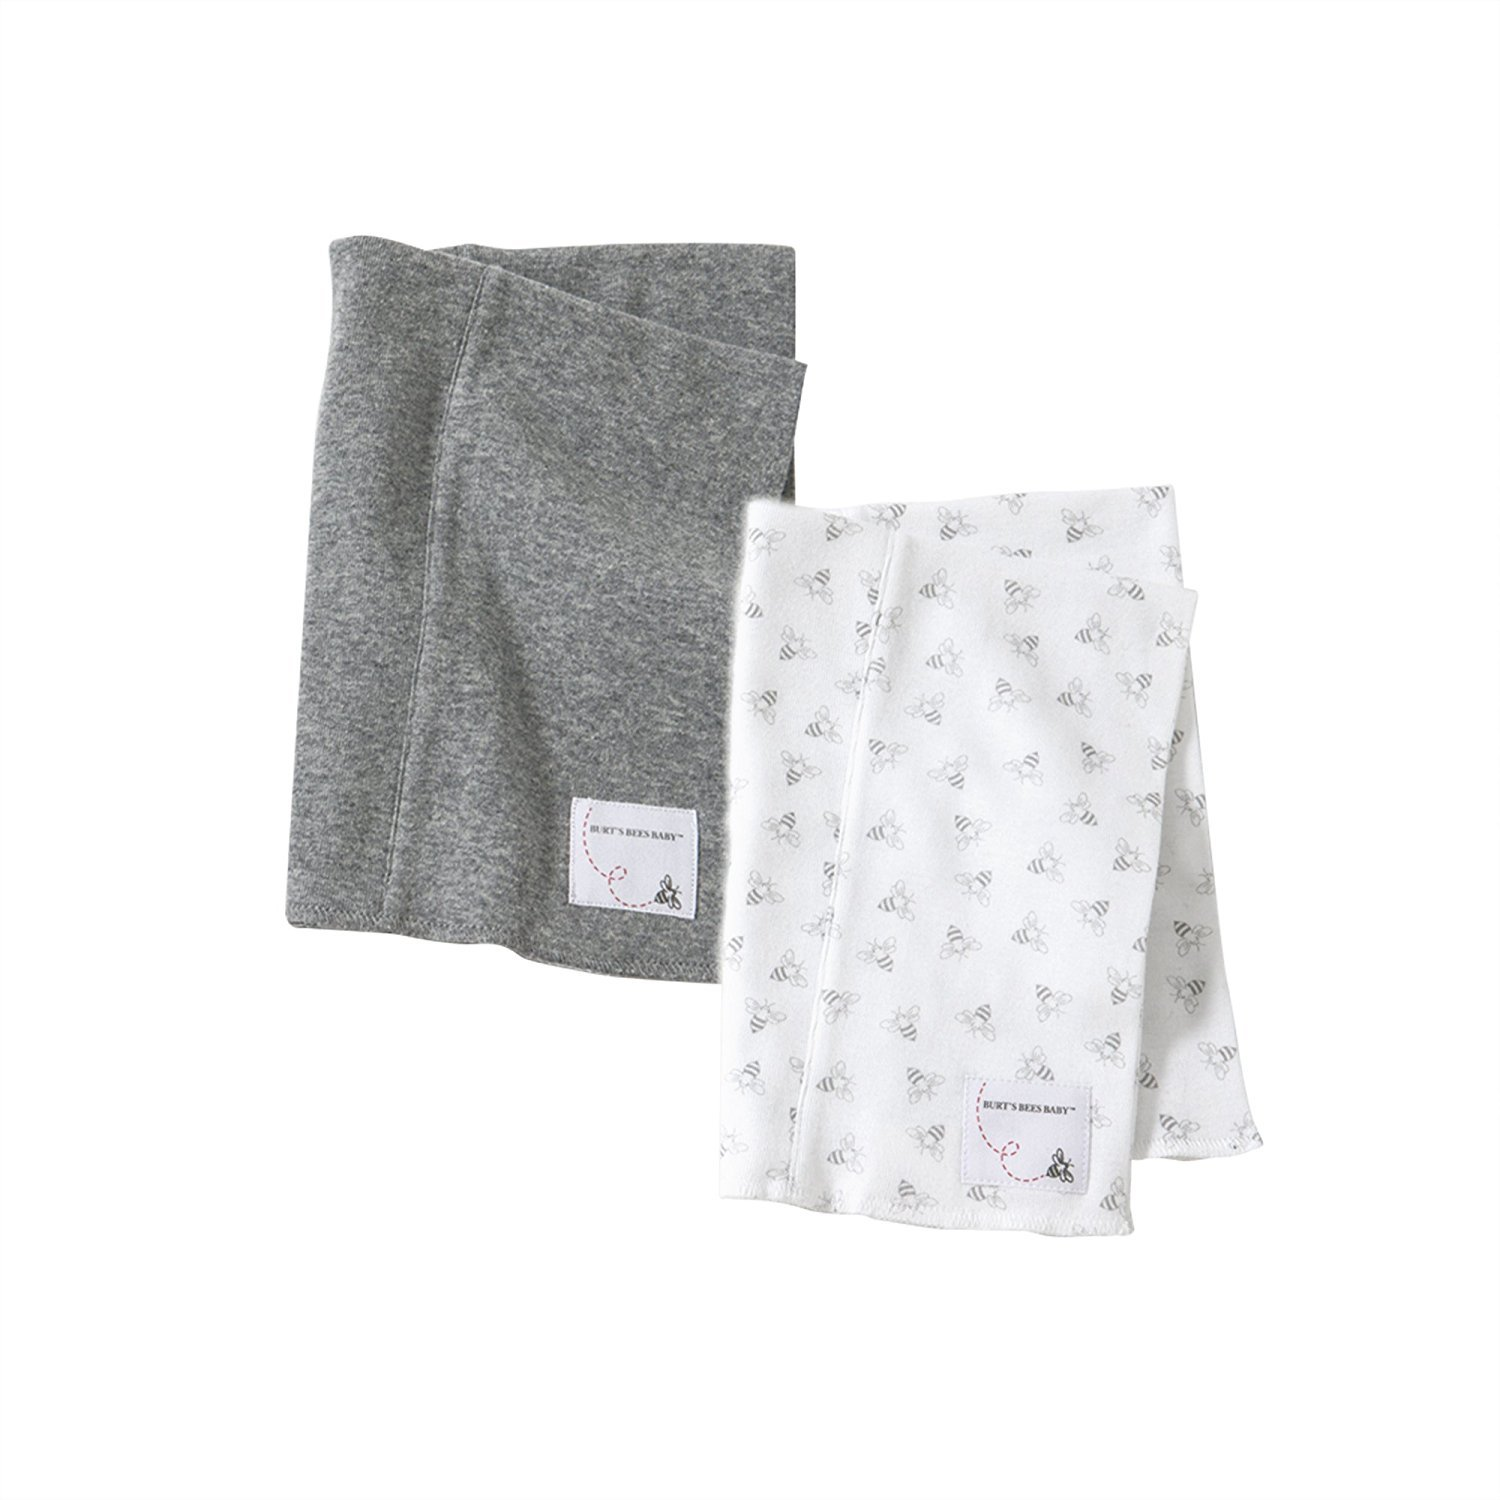 Burt's Bees Baby Baby Set Of 2 Organic Burp Cloths, Heather Grey, One Size Burt' s Bees Children' s Apparel LY11425-HTG-OS-B